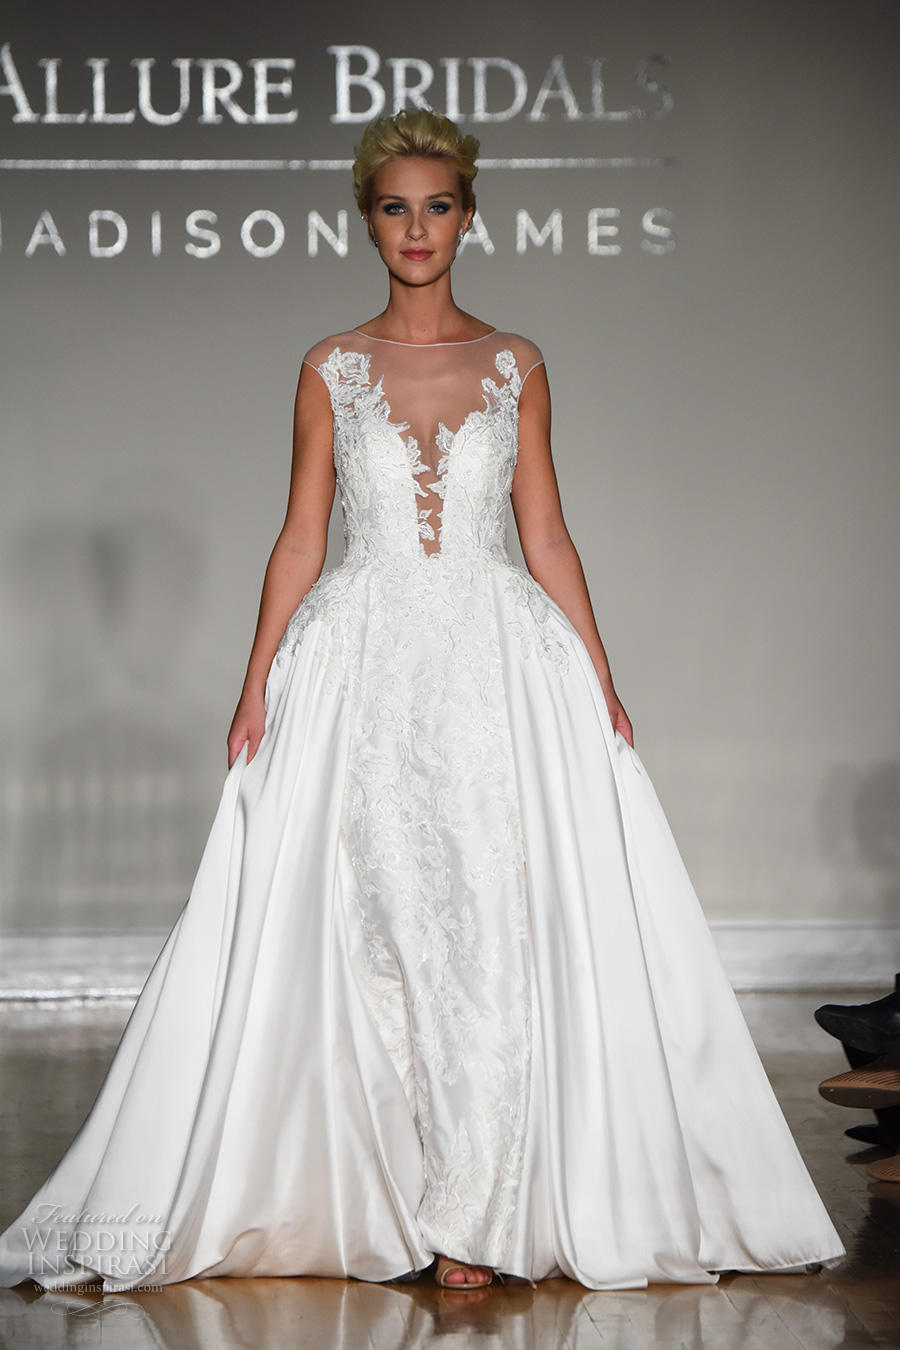 allure bridal maddison james f2017 cap sleeves illusion bateau deep plunging neckline heavily embellished bodice elegant ball gown wedding dress sheer back sweep train (034) mv